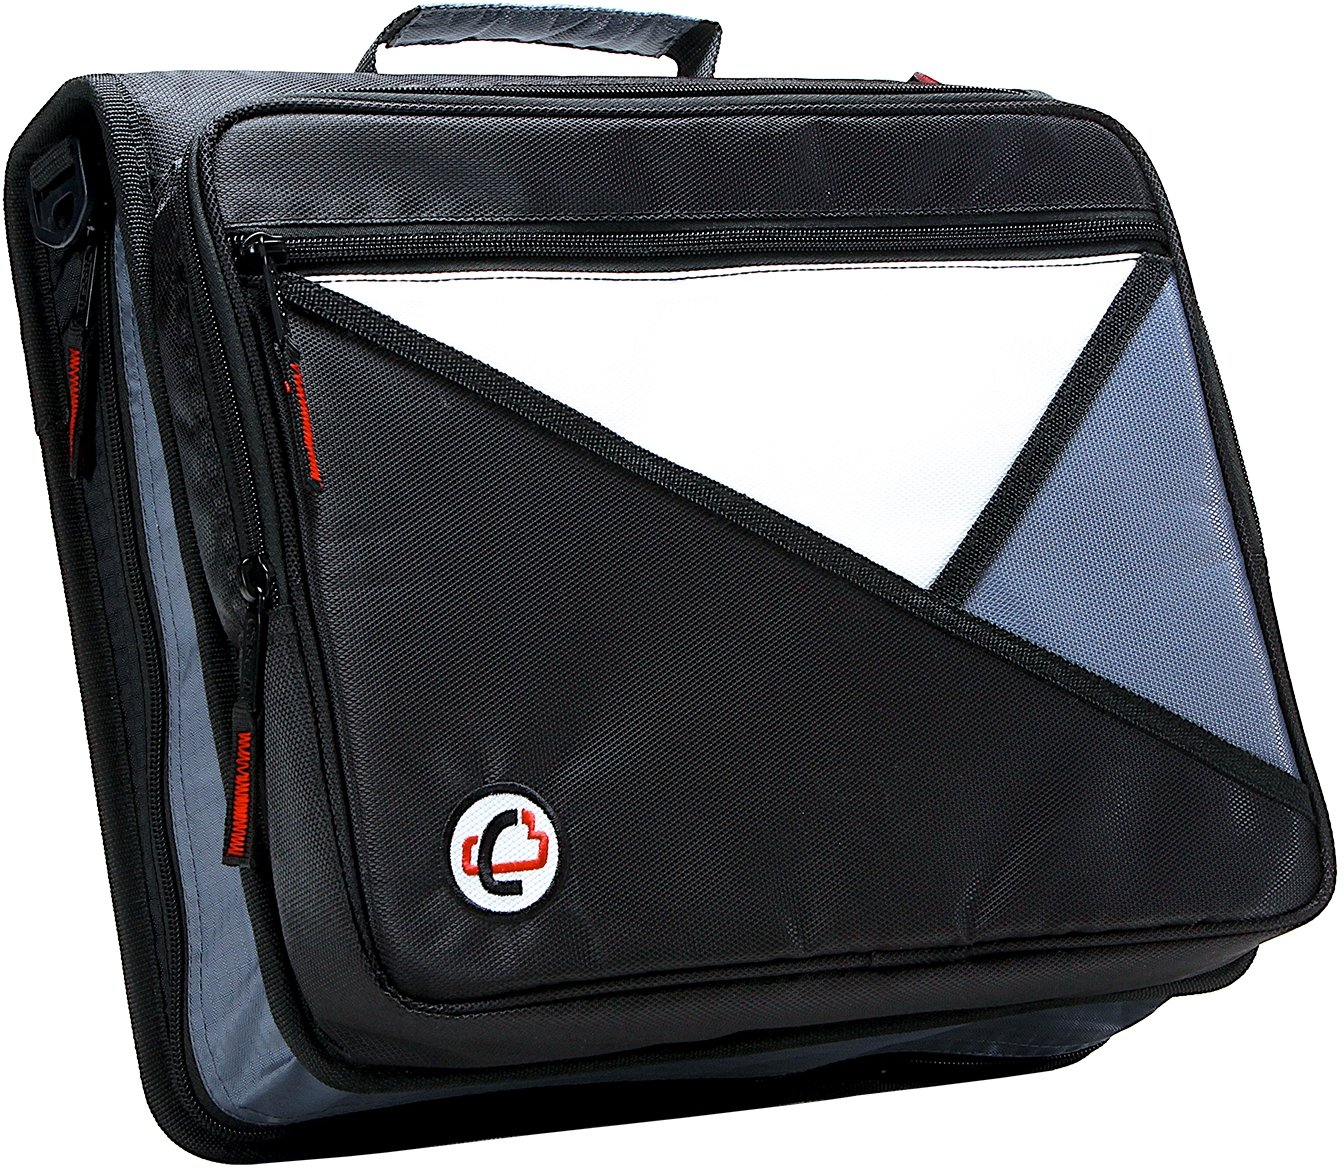 Case-it Universal 2-Inch 3-Ring Zipper Binder, Holds 13 Inch Laptop, Black, LT-007-BLK by Case it